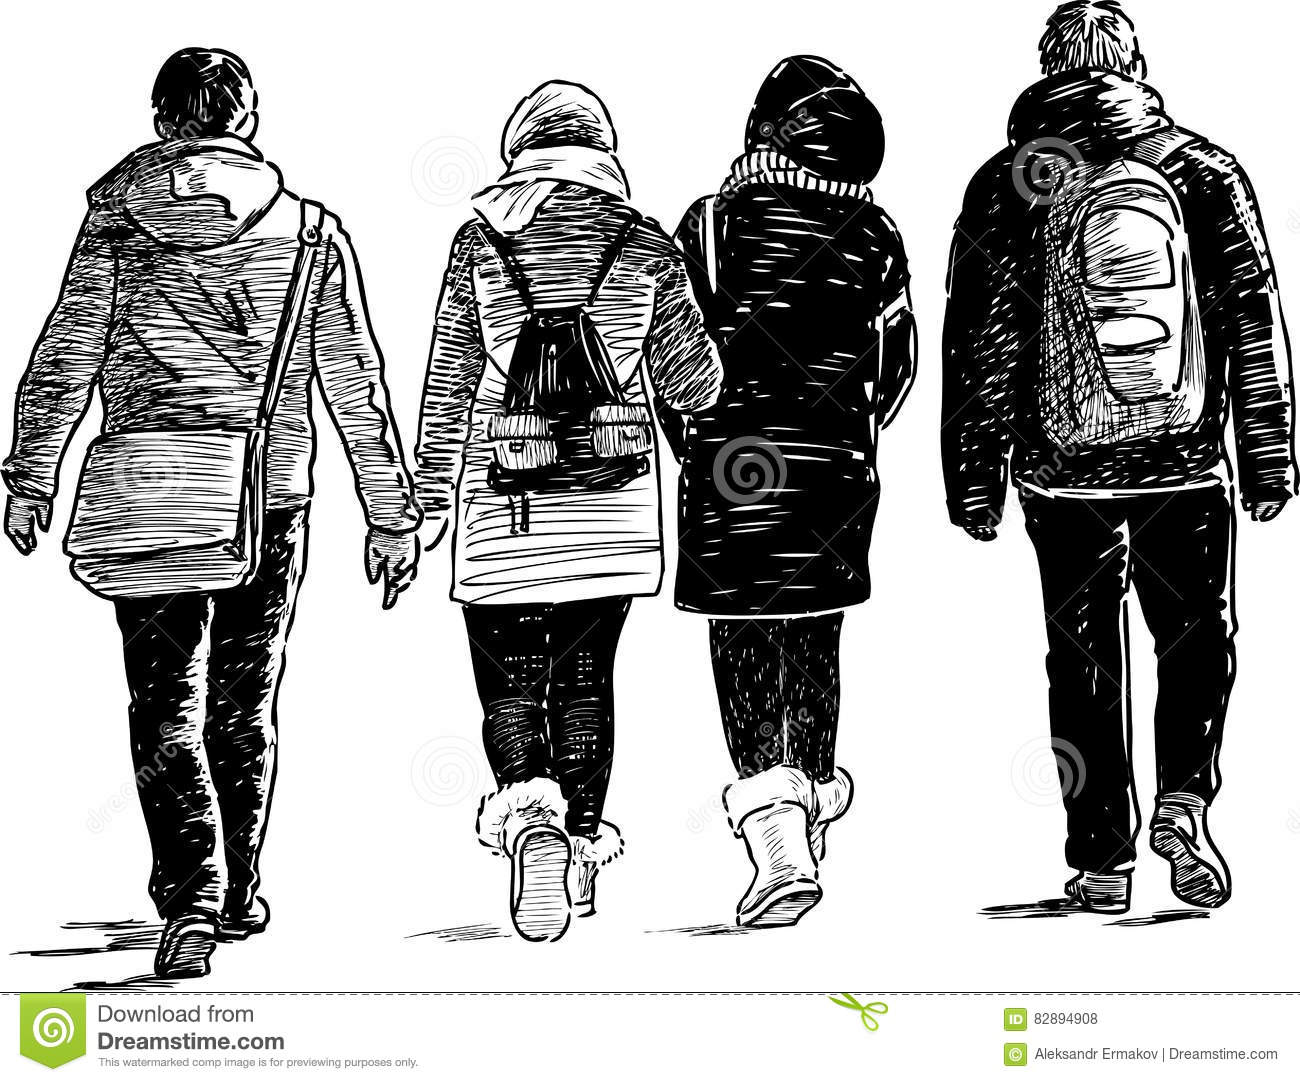 young sketch walking walk drawing students dreamstime vector illustration preview shutterstock english